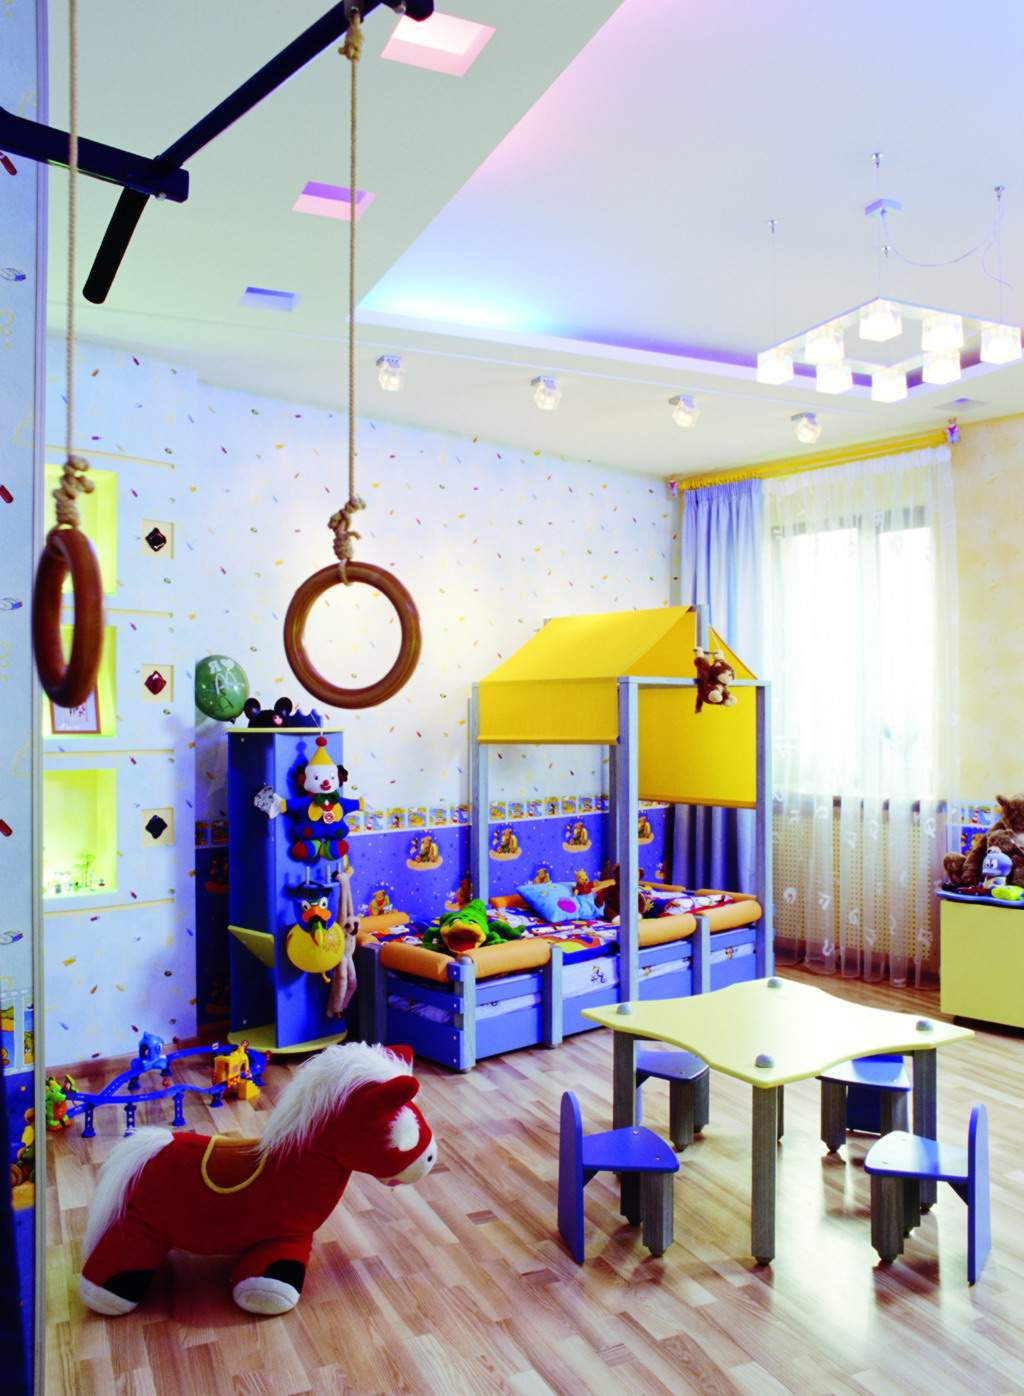 15 creative kids bedroom decorating ideas for Kid room decor